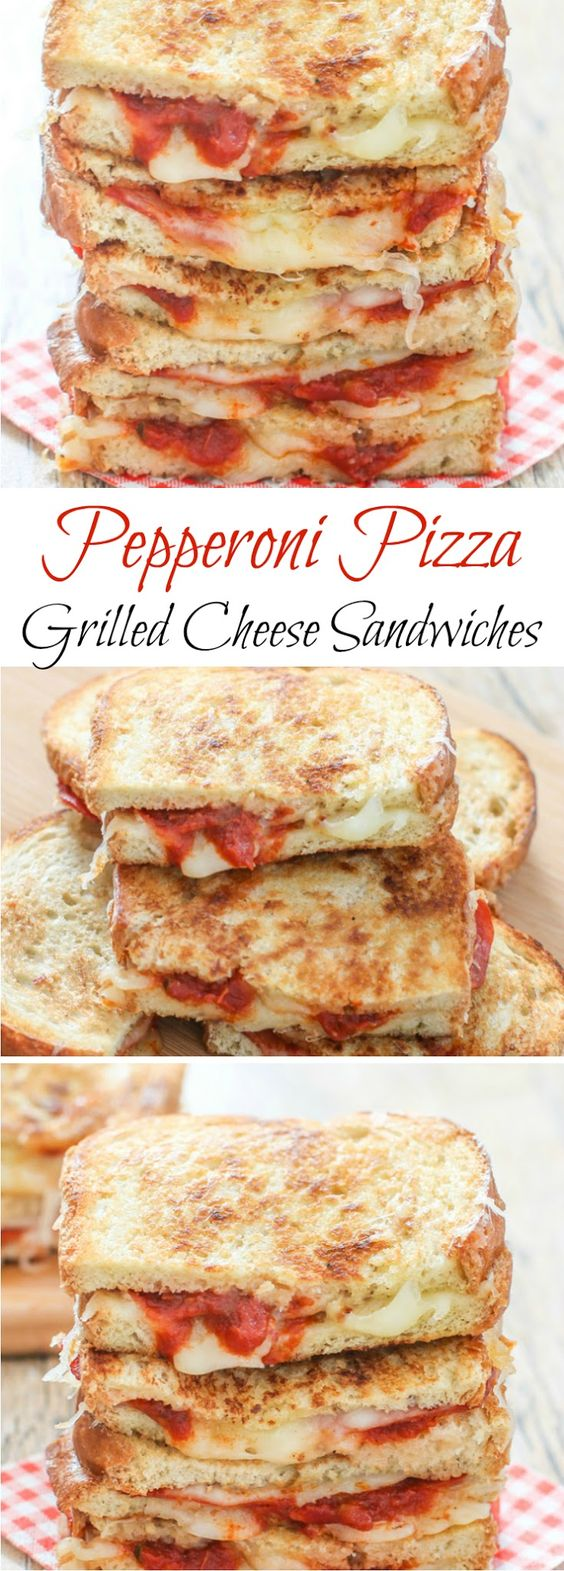 Grilled cheese sandwiches are kicked up a notch with the addition of pepperoni slices, mozzarella cheese, and marinara sauce.